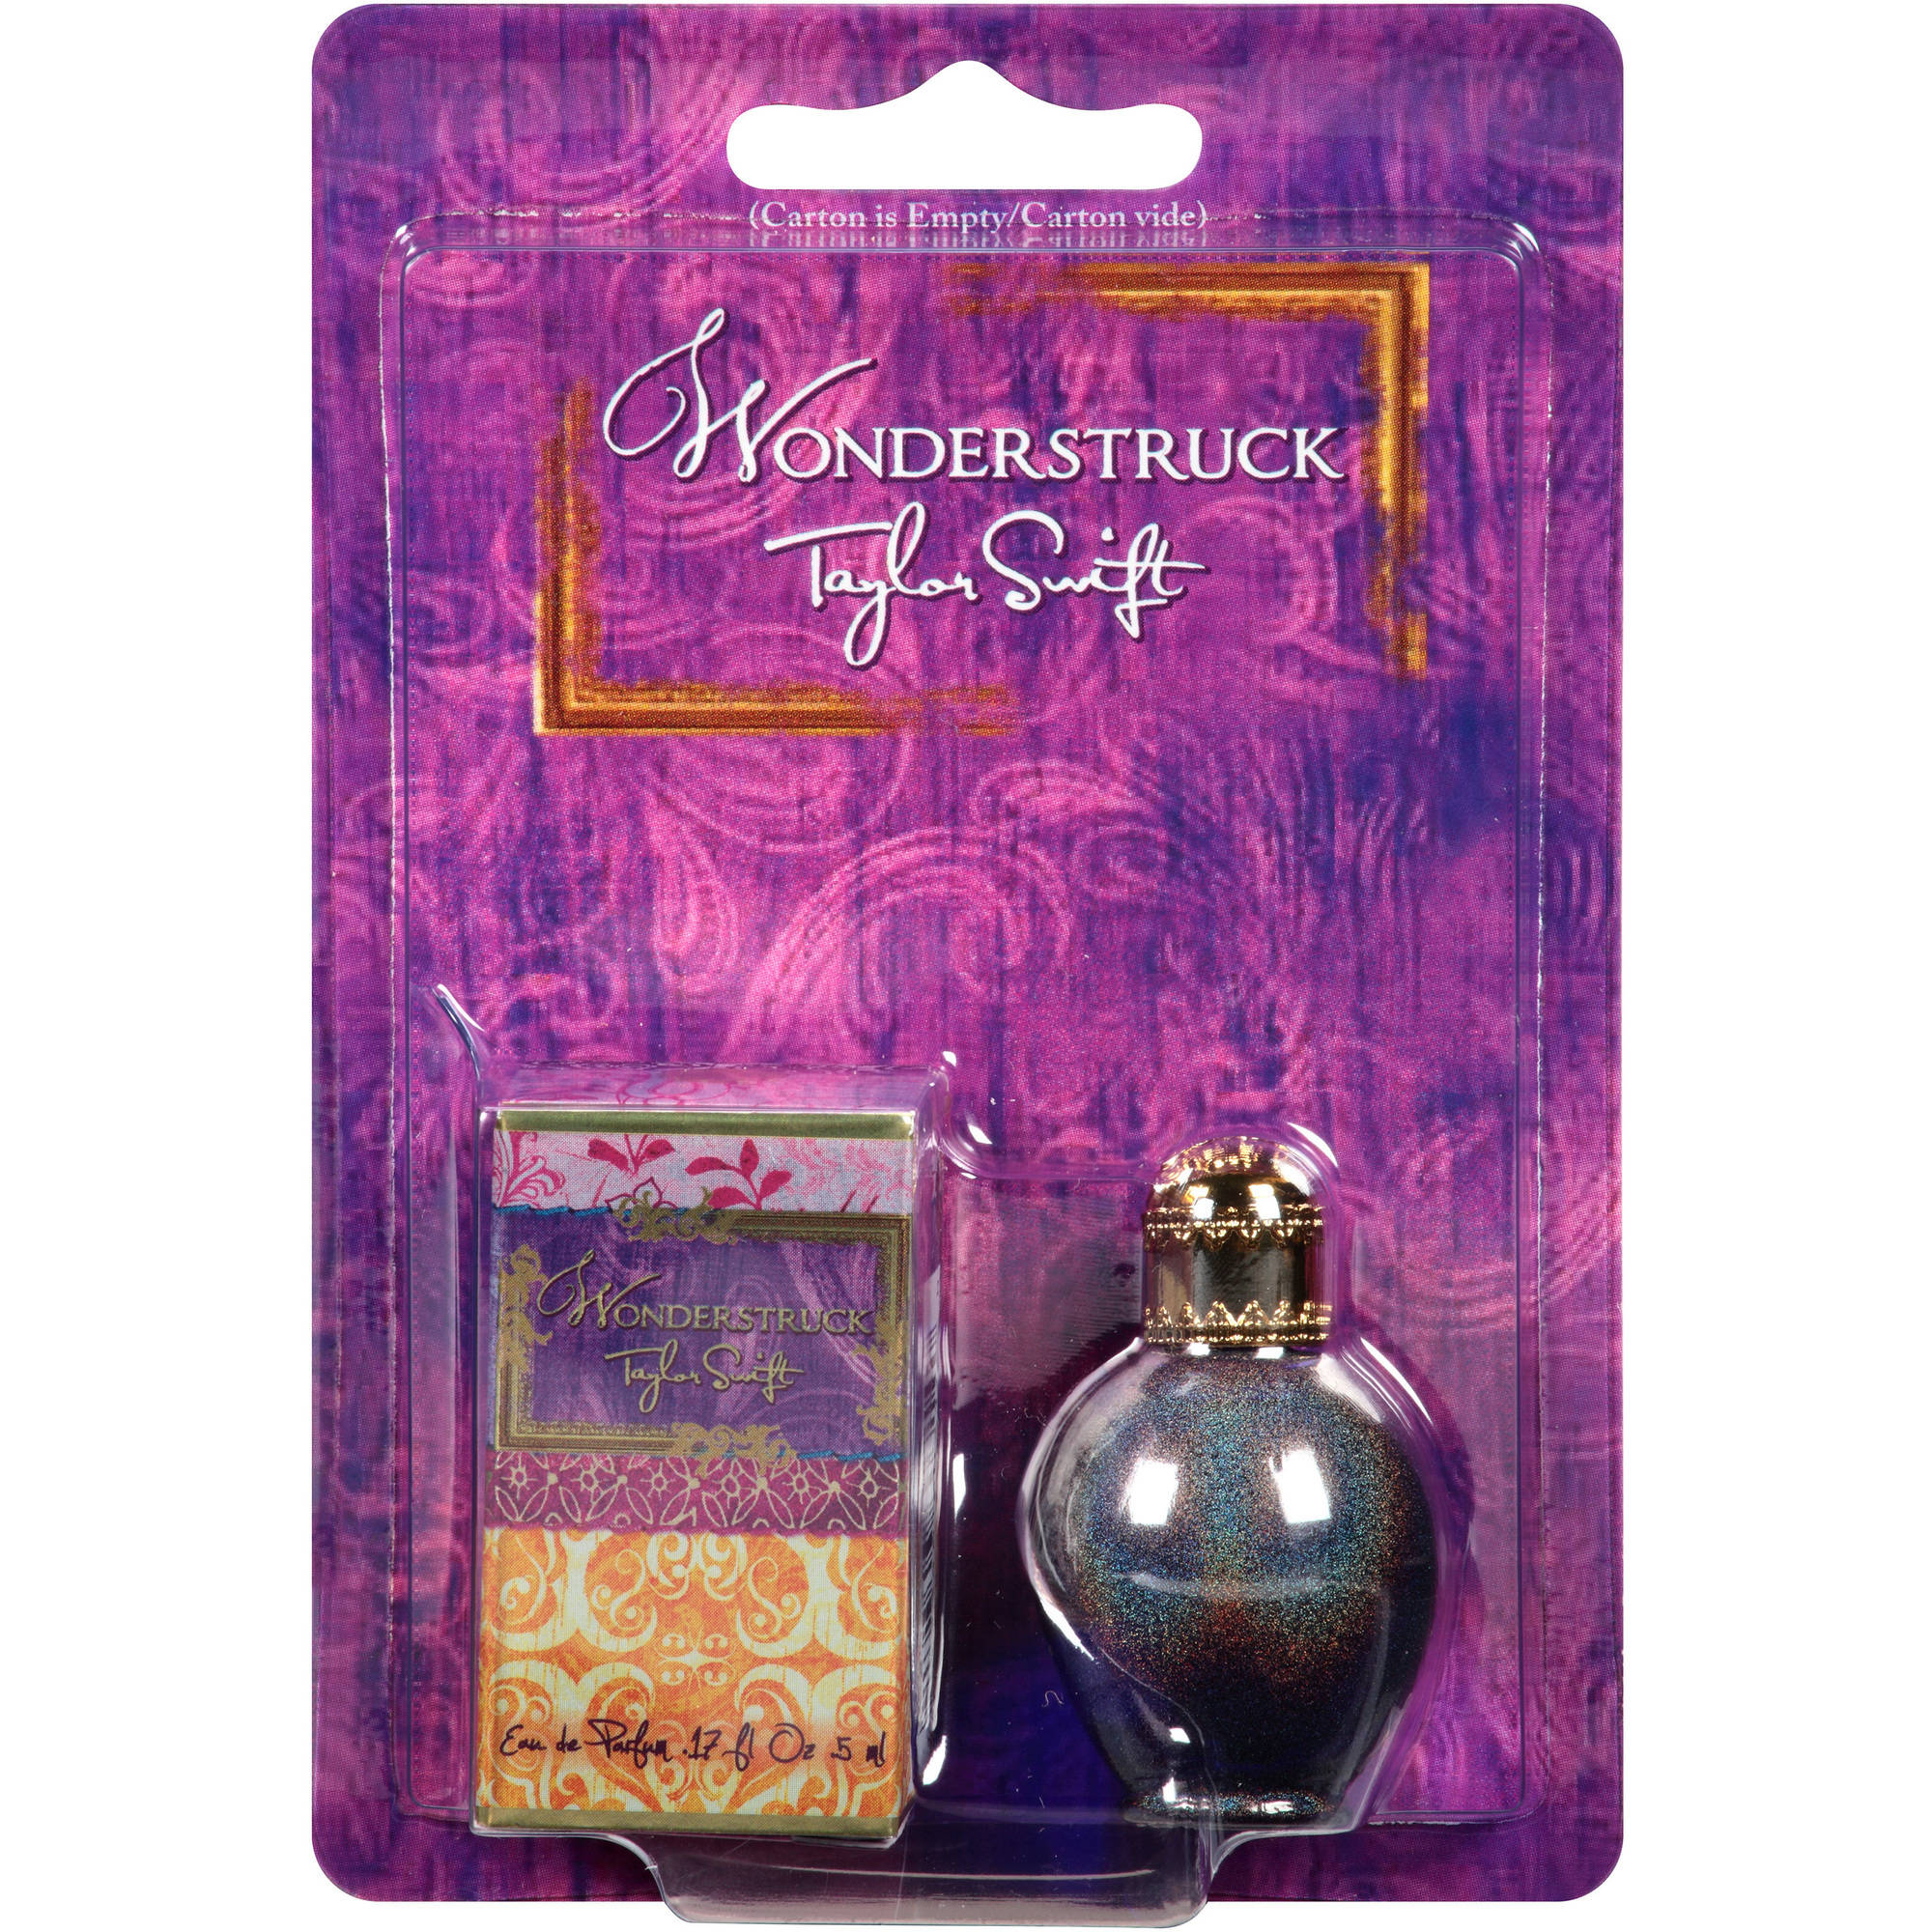 Taylor Swift Wonderstruck Eau de Parfum Mini, 0.17 fl oz